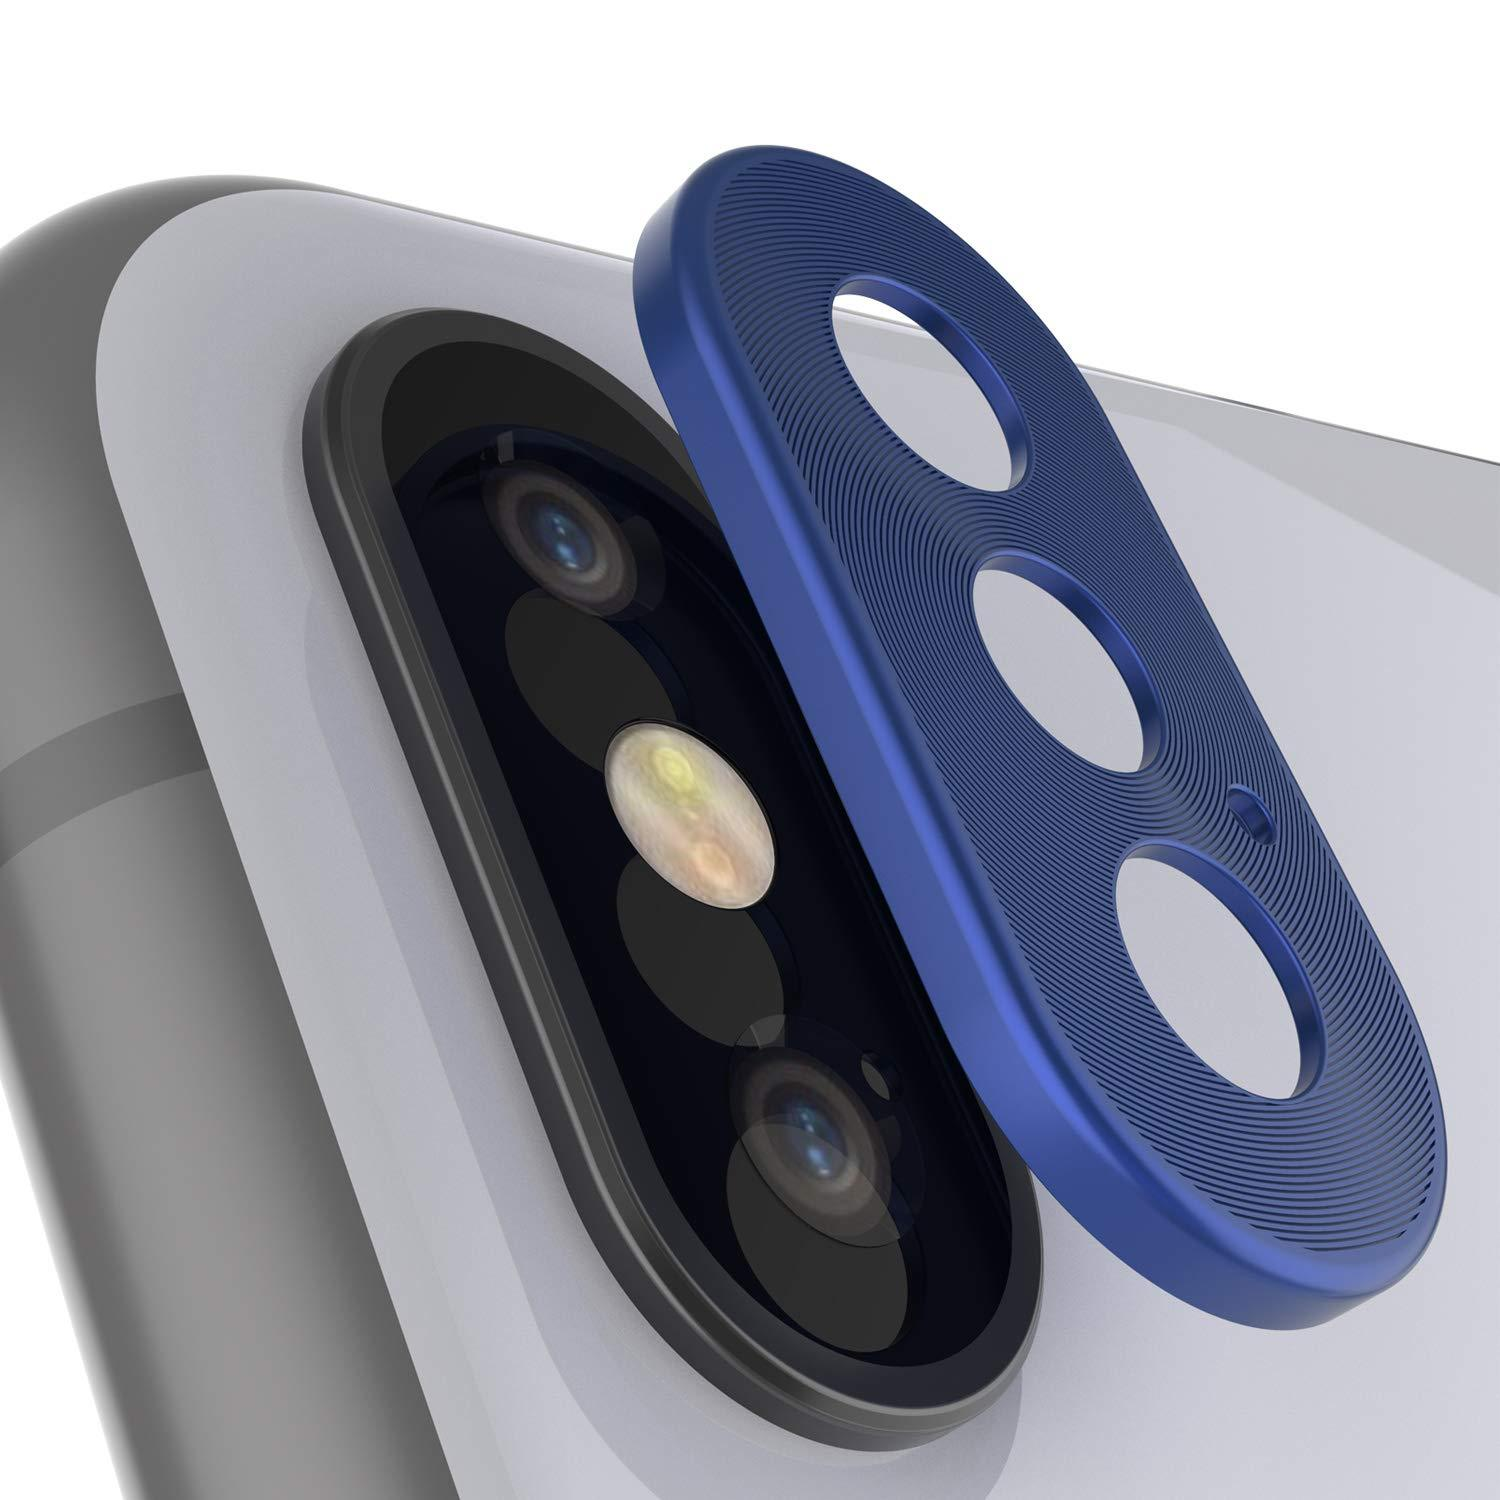 Punkcase iPhone XS Max Camera Protector Ring [Blue]